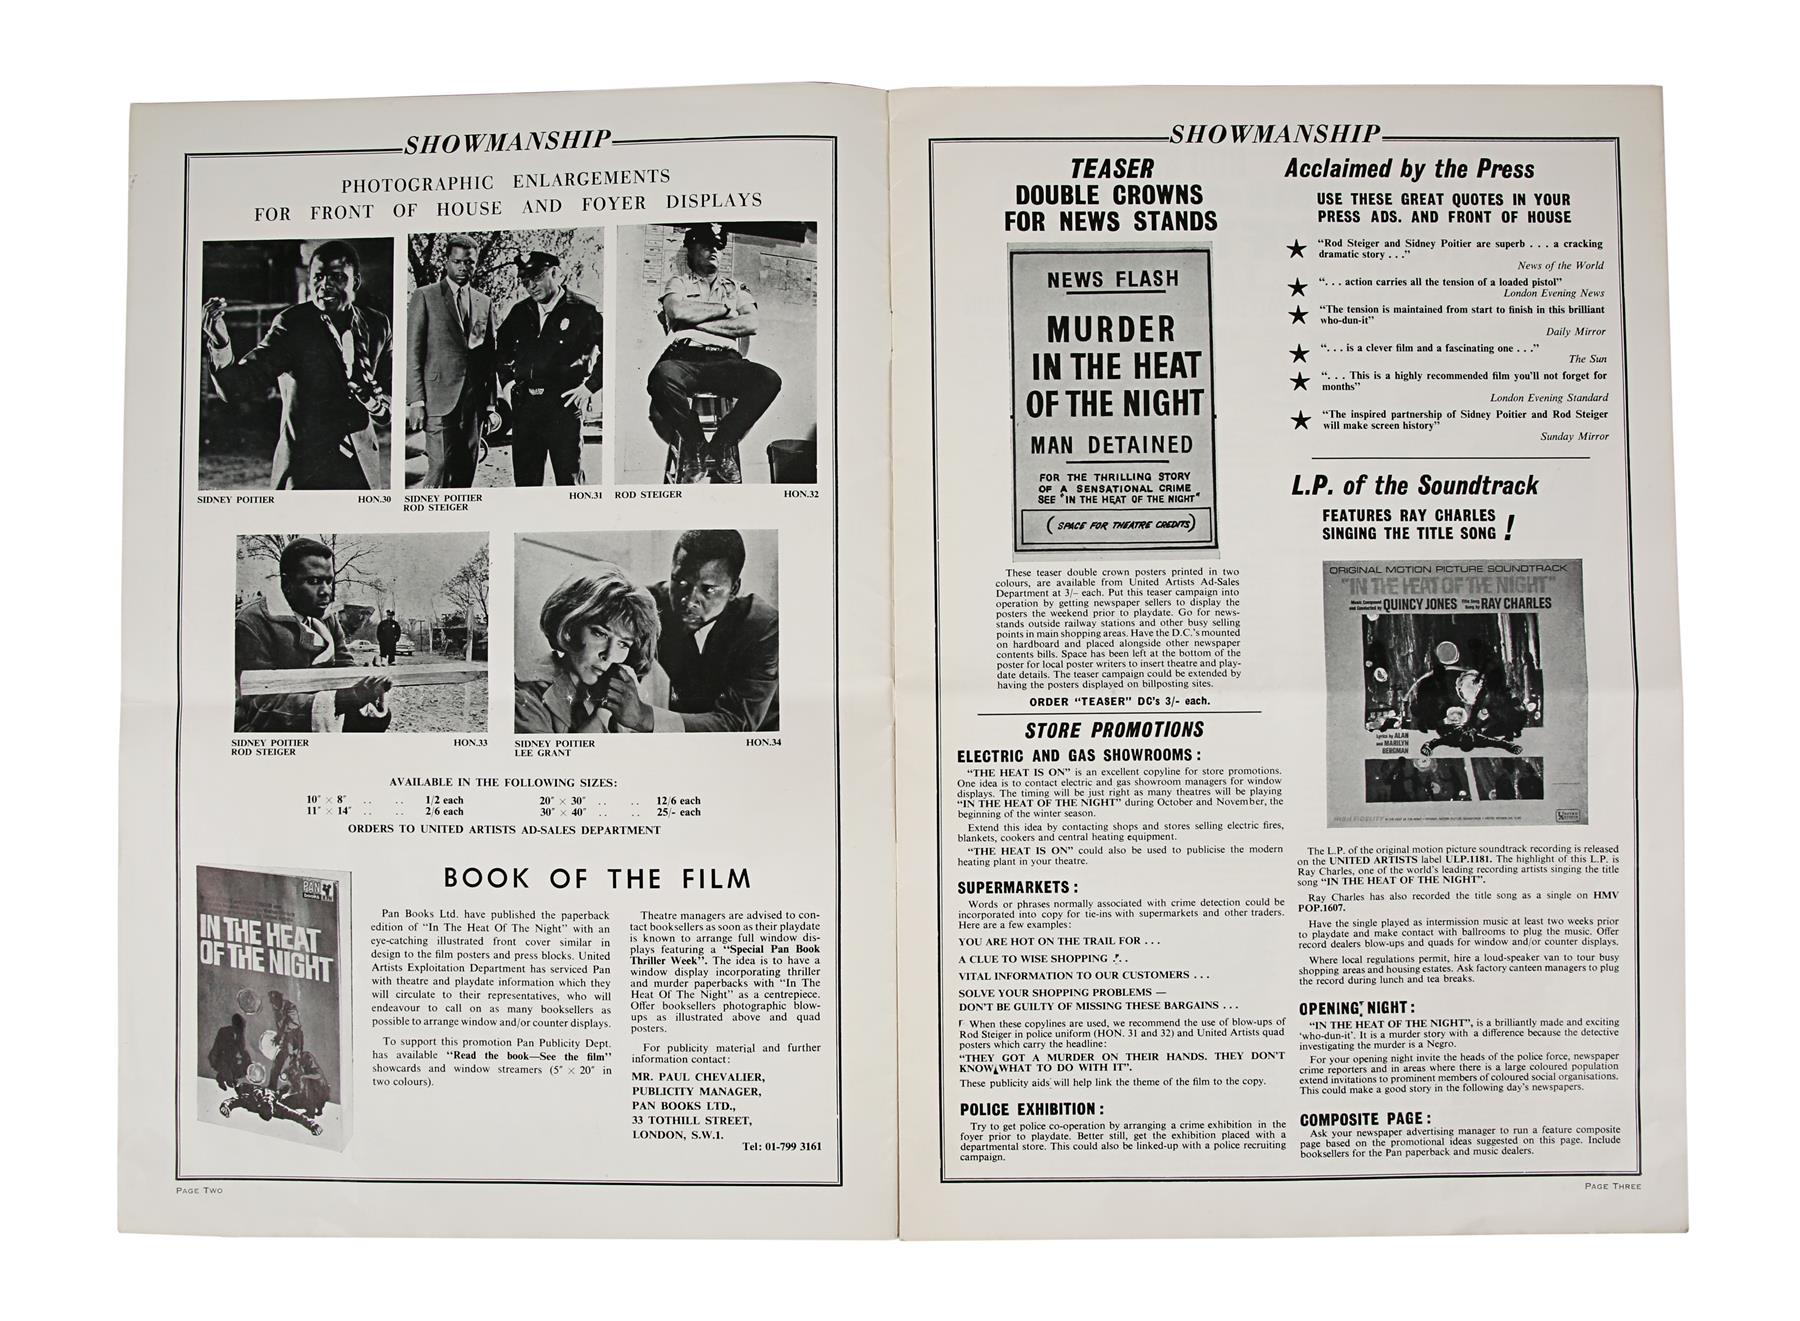 IN THE HEAT OF THE NIGHT (1967) - British Exhibitors' Campaign Book, 1967, Autographed by Sidney Poi - Image 2 of 6